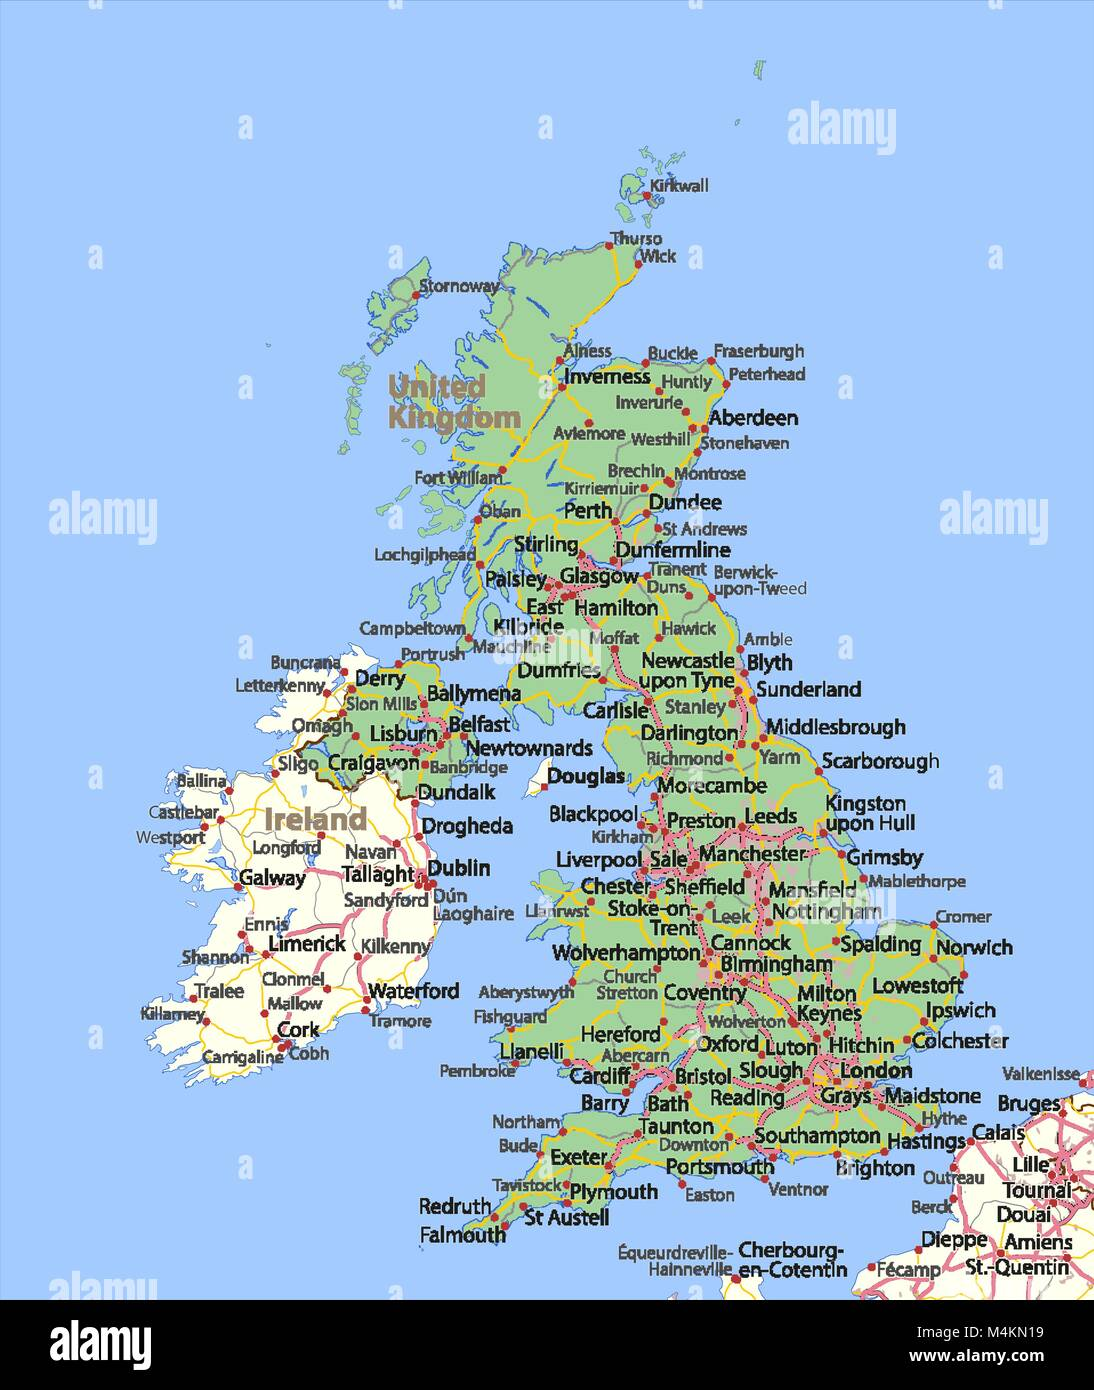 Map of the United Kingdom  Shows country borders, urban areas, place